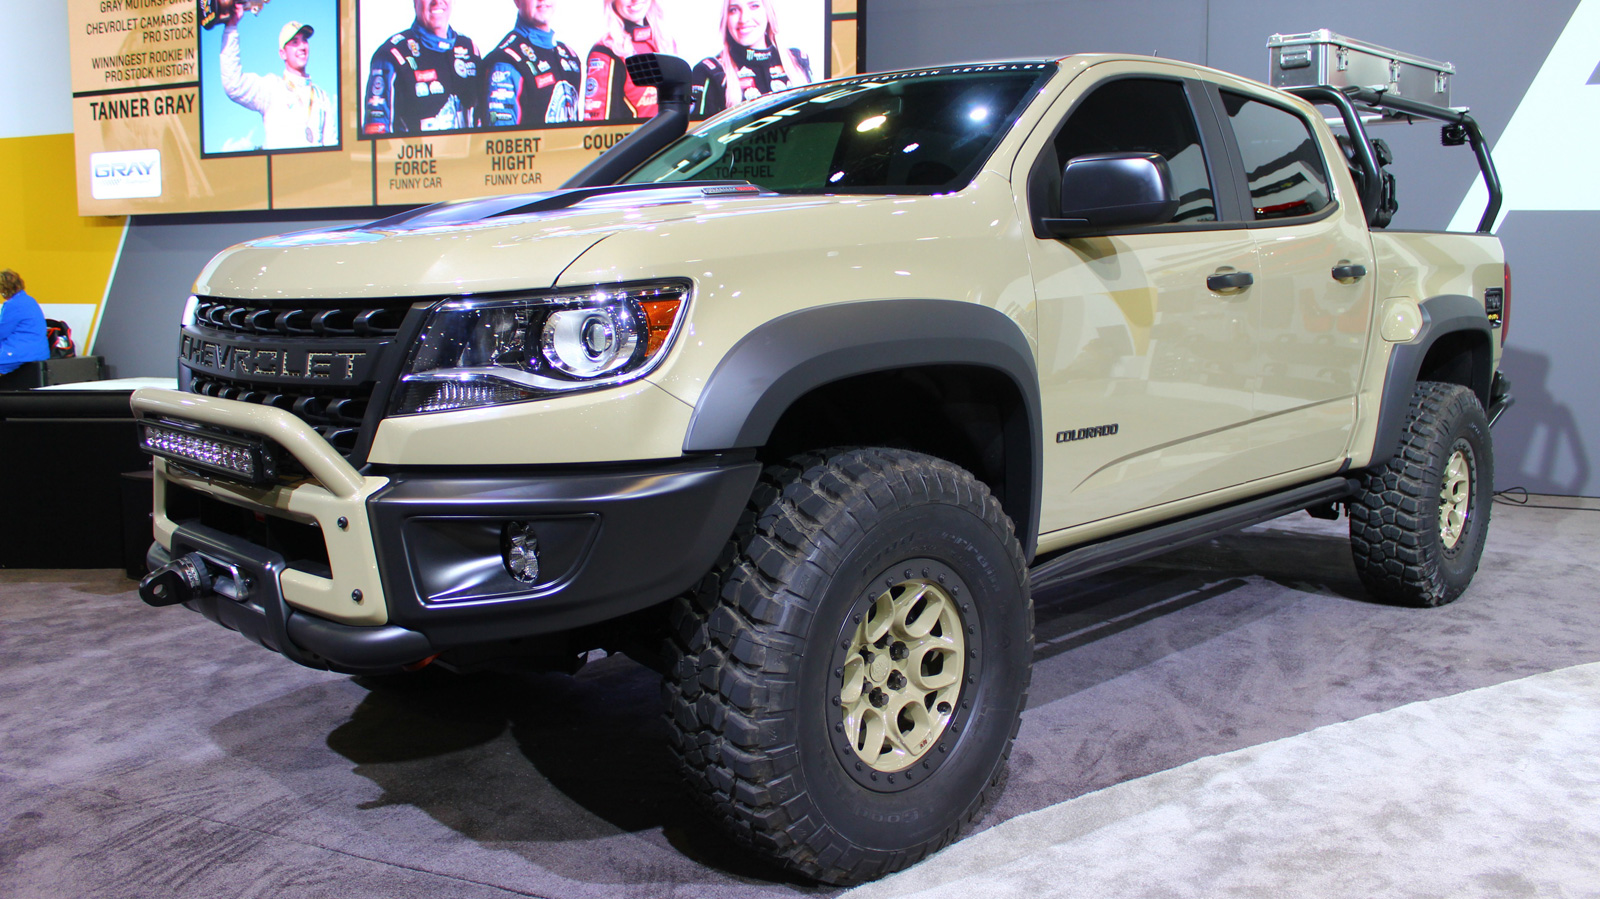 Chevy Colorado Concepts Built For Overlanding Desert